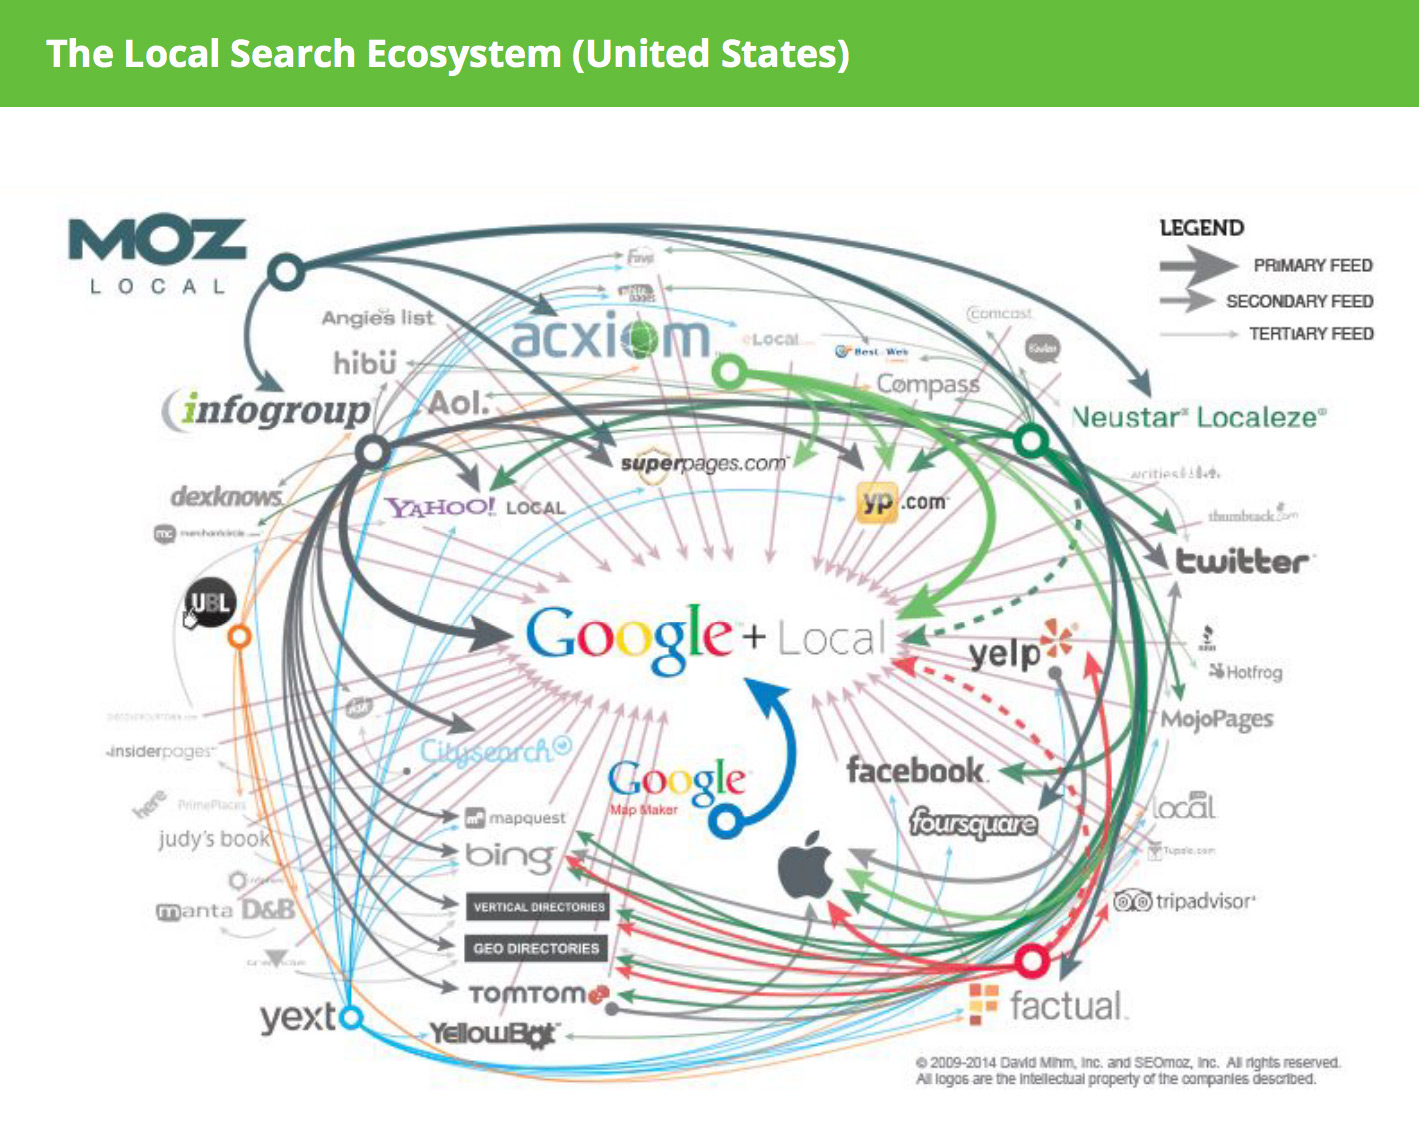 local search ecosystem united states